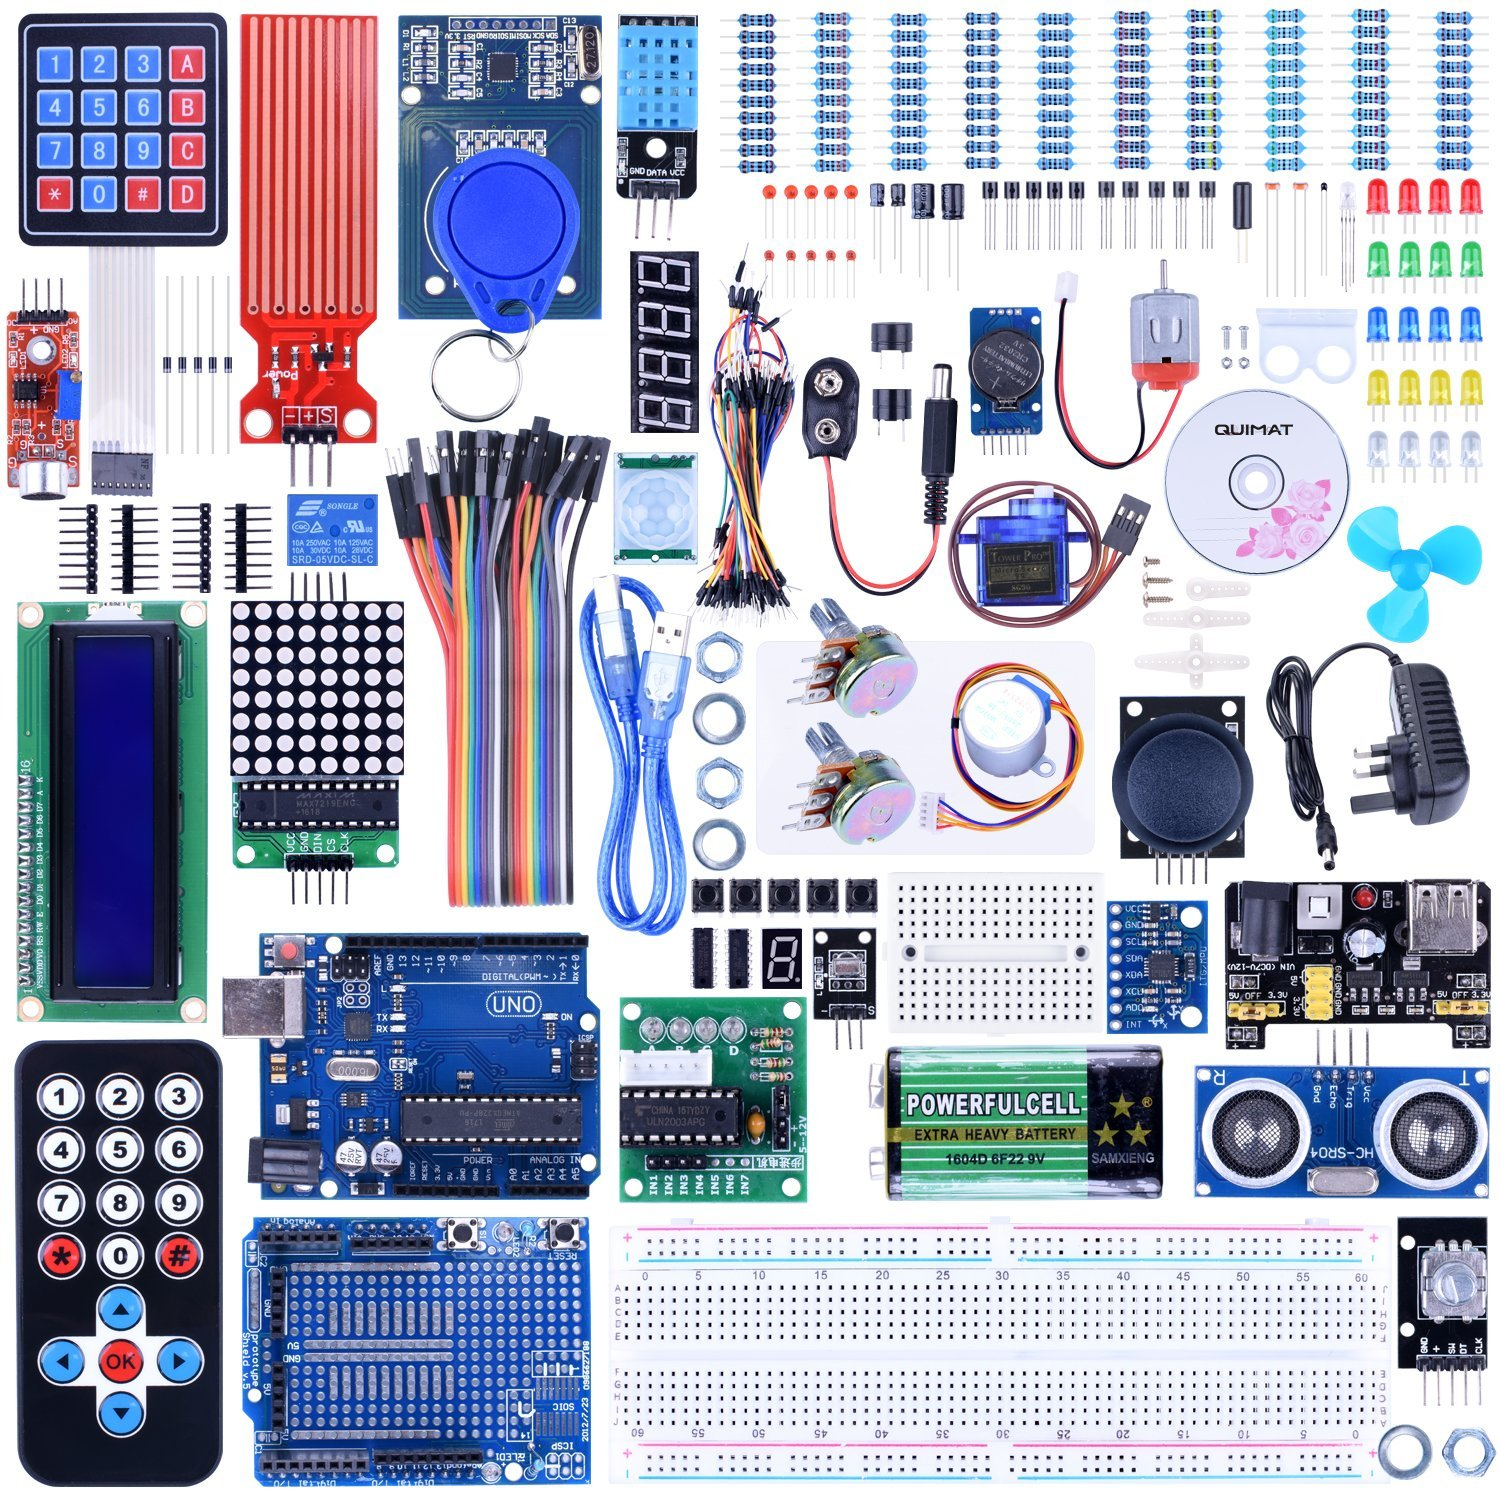 Quimat UNO R3 Project Complete Ultimate Starter Kit for Arduino with Tutorial,UNO R3 Development Board, LCD1602, Servo QK27 frree shipping top selling high qualiy uno r3 starter kit 1602 lcd dot matrix breadboard led resistor hot selling